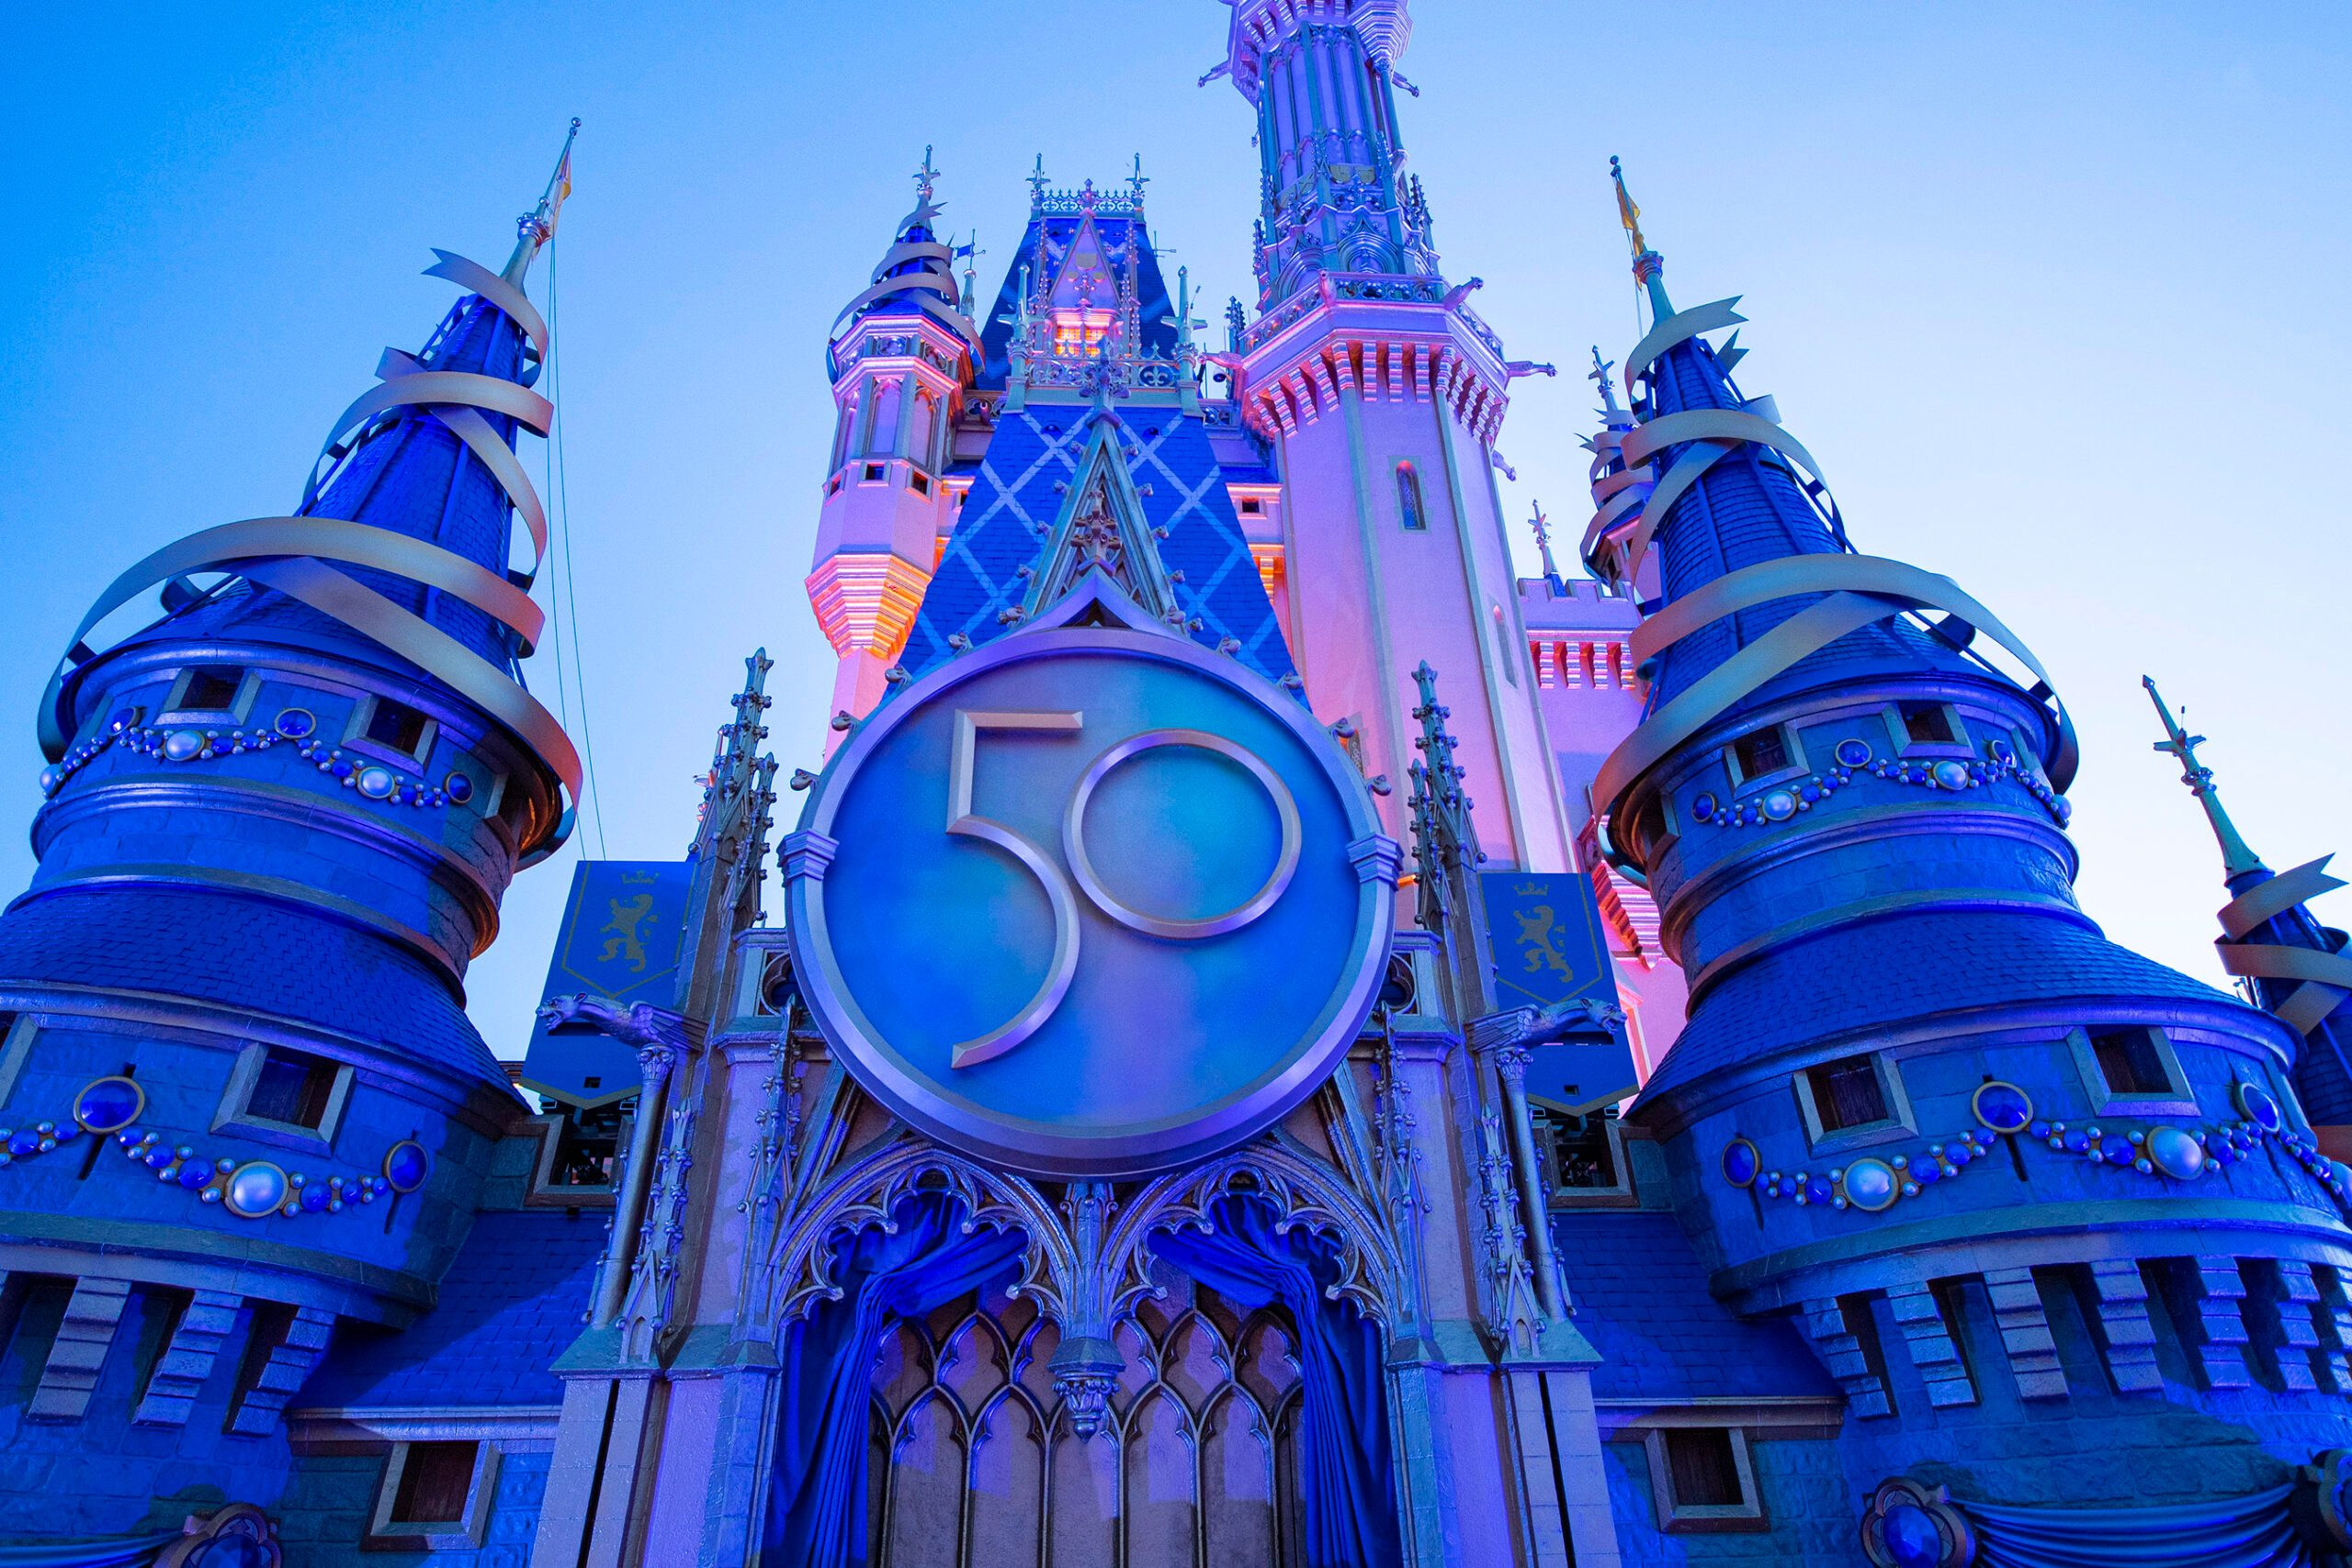 magic kingdom cinderella castle lit up at night with crest for 50th anniversary